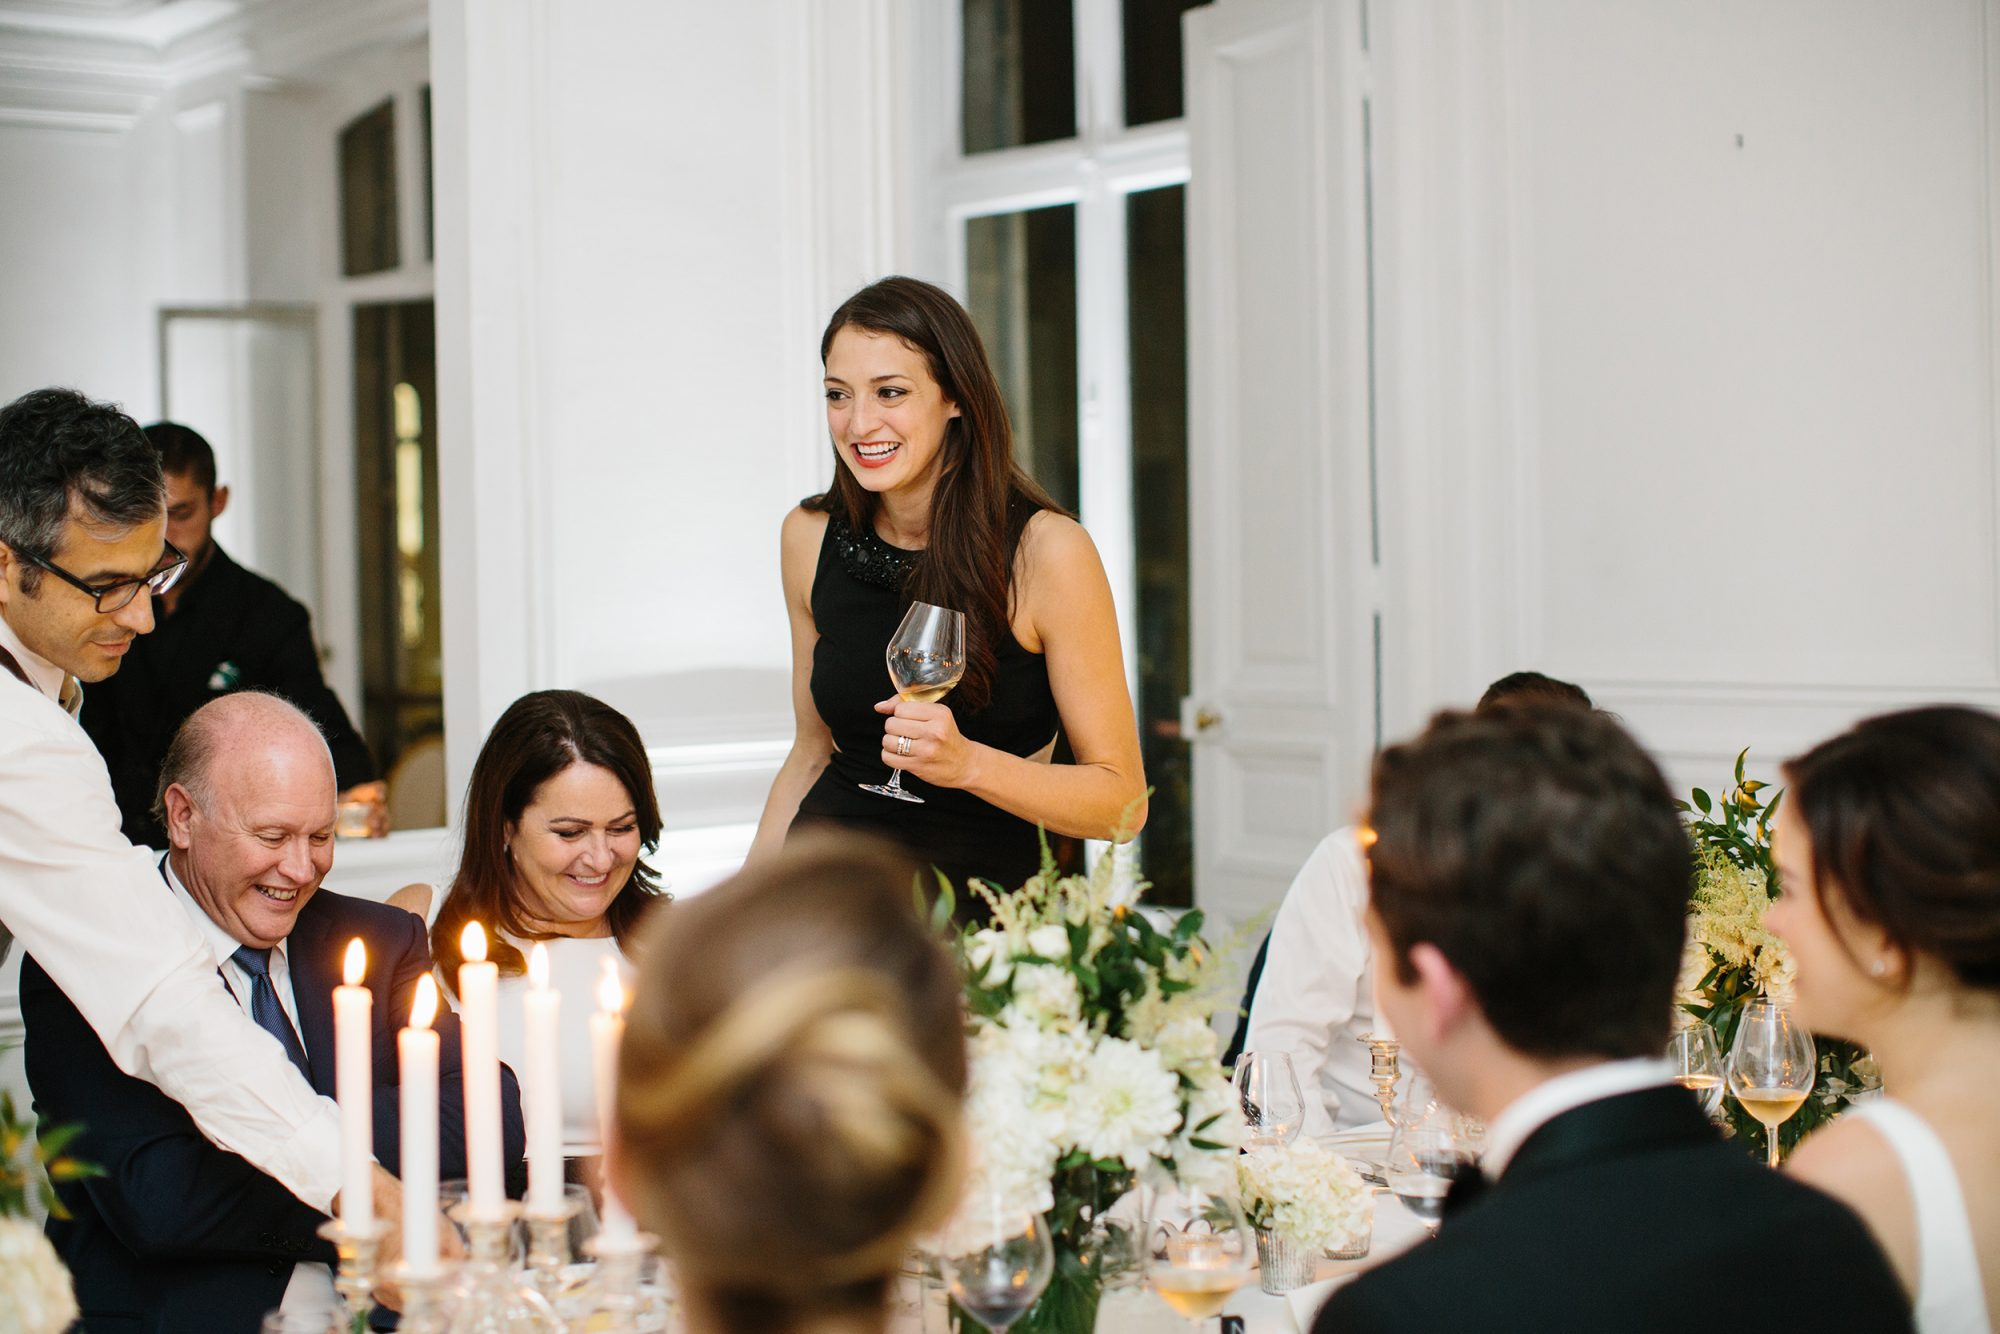 Maid of Honor Wedding Toast